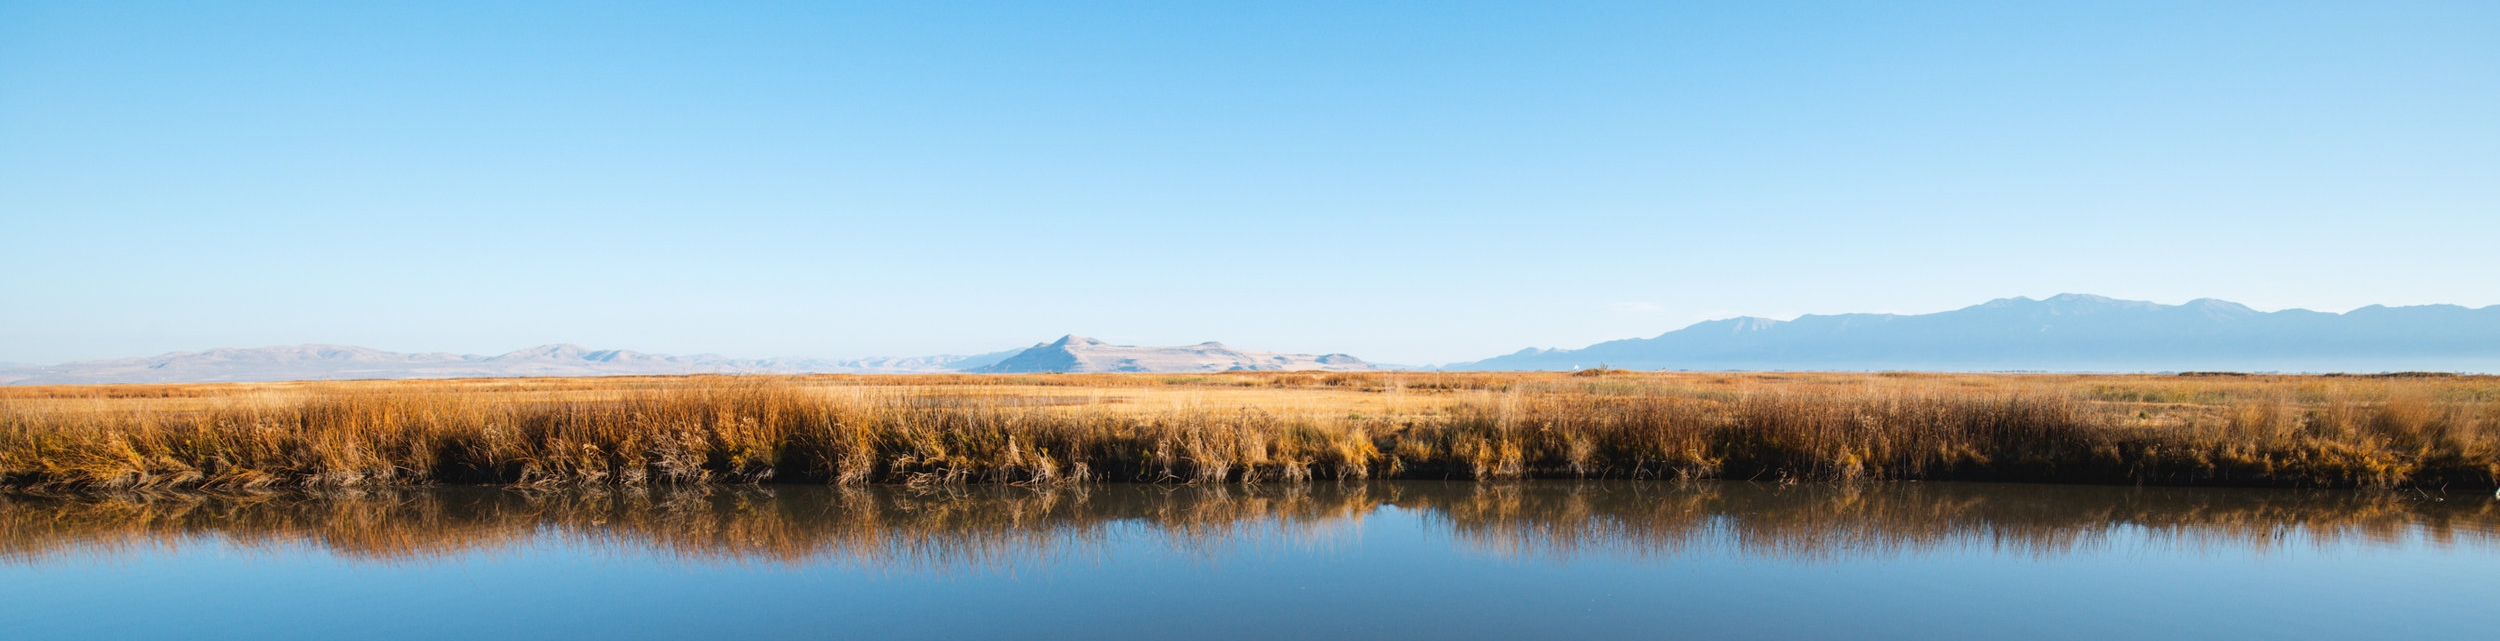 Bear-River-Migratory-Bird-Refuge-44.jpg